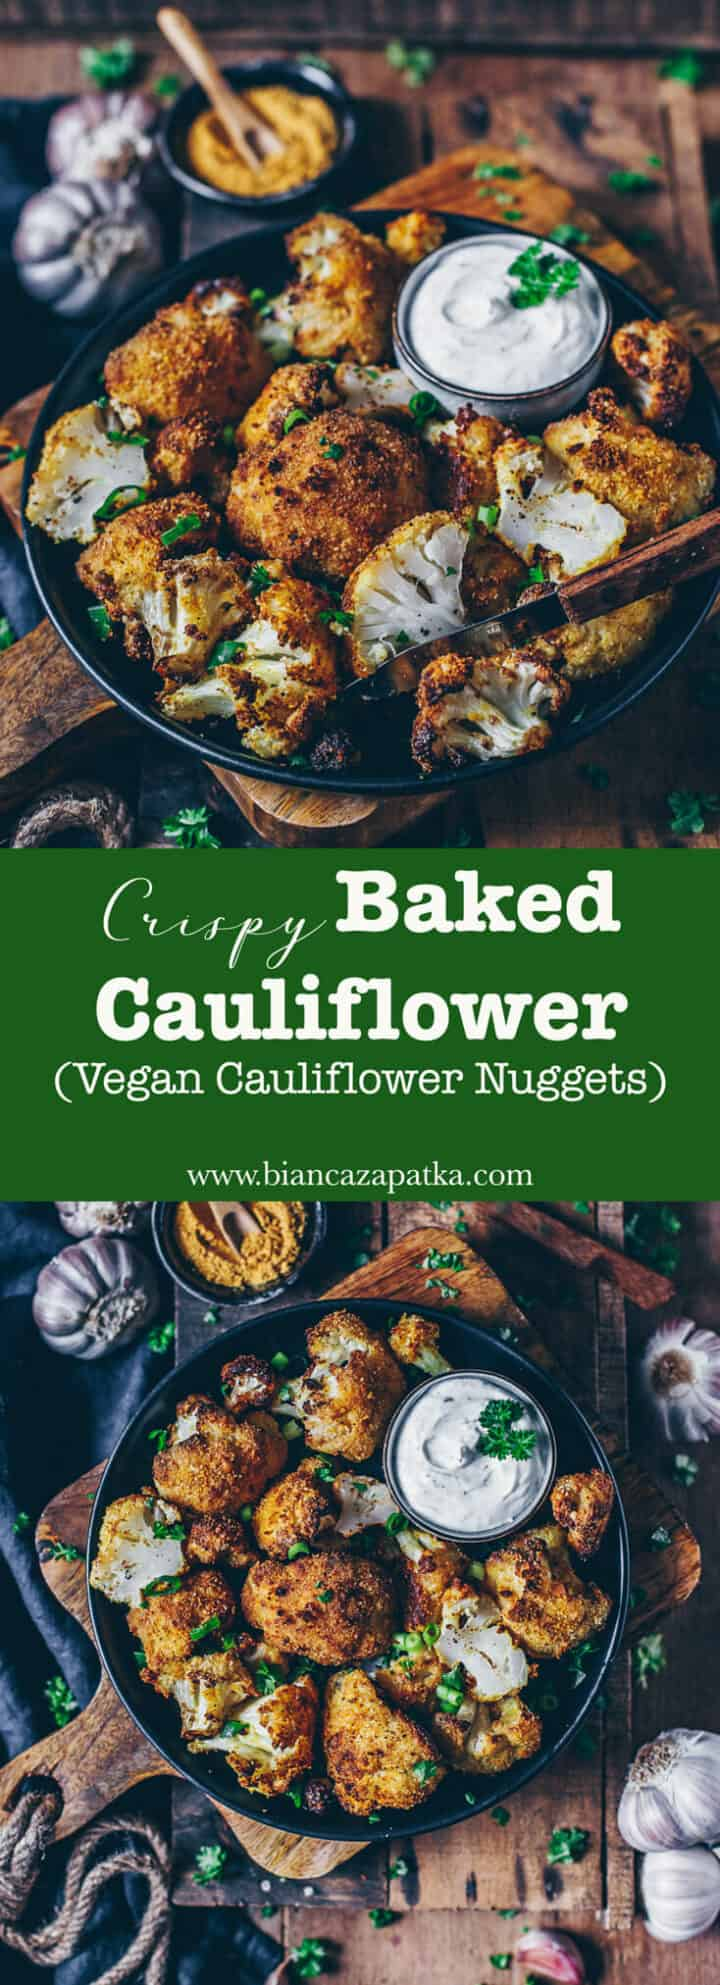 Baked cauliflower with crunchy breading is easy to prepare and a delicious and healthy alternative to traditional nuggets. Perfect as a side dish to any meals or simply as a snack in between! (This recipe is vegan with a gluten-free option)